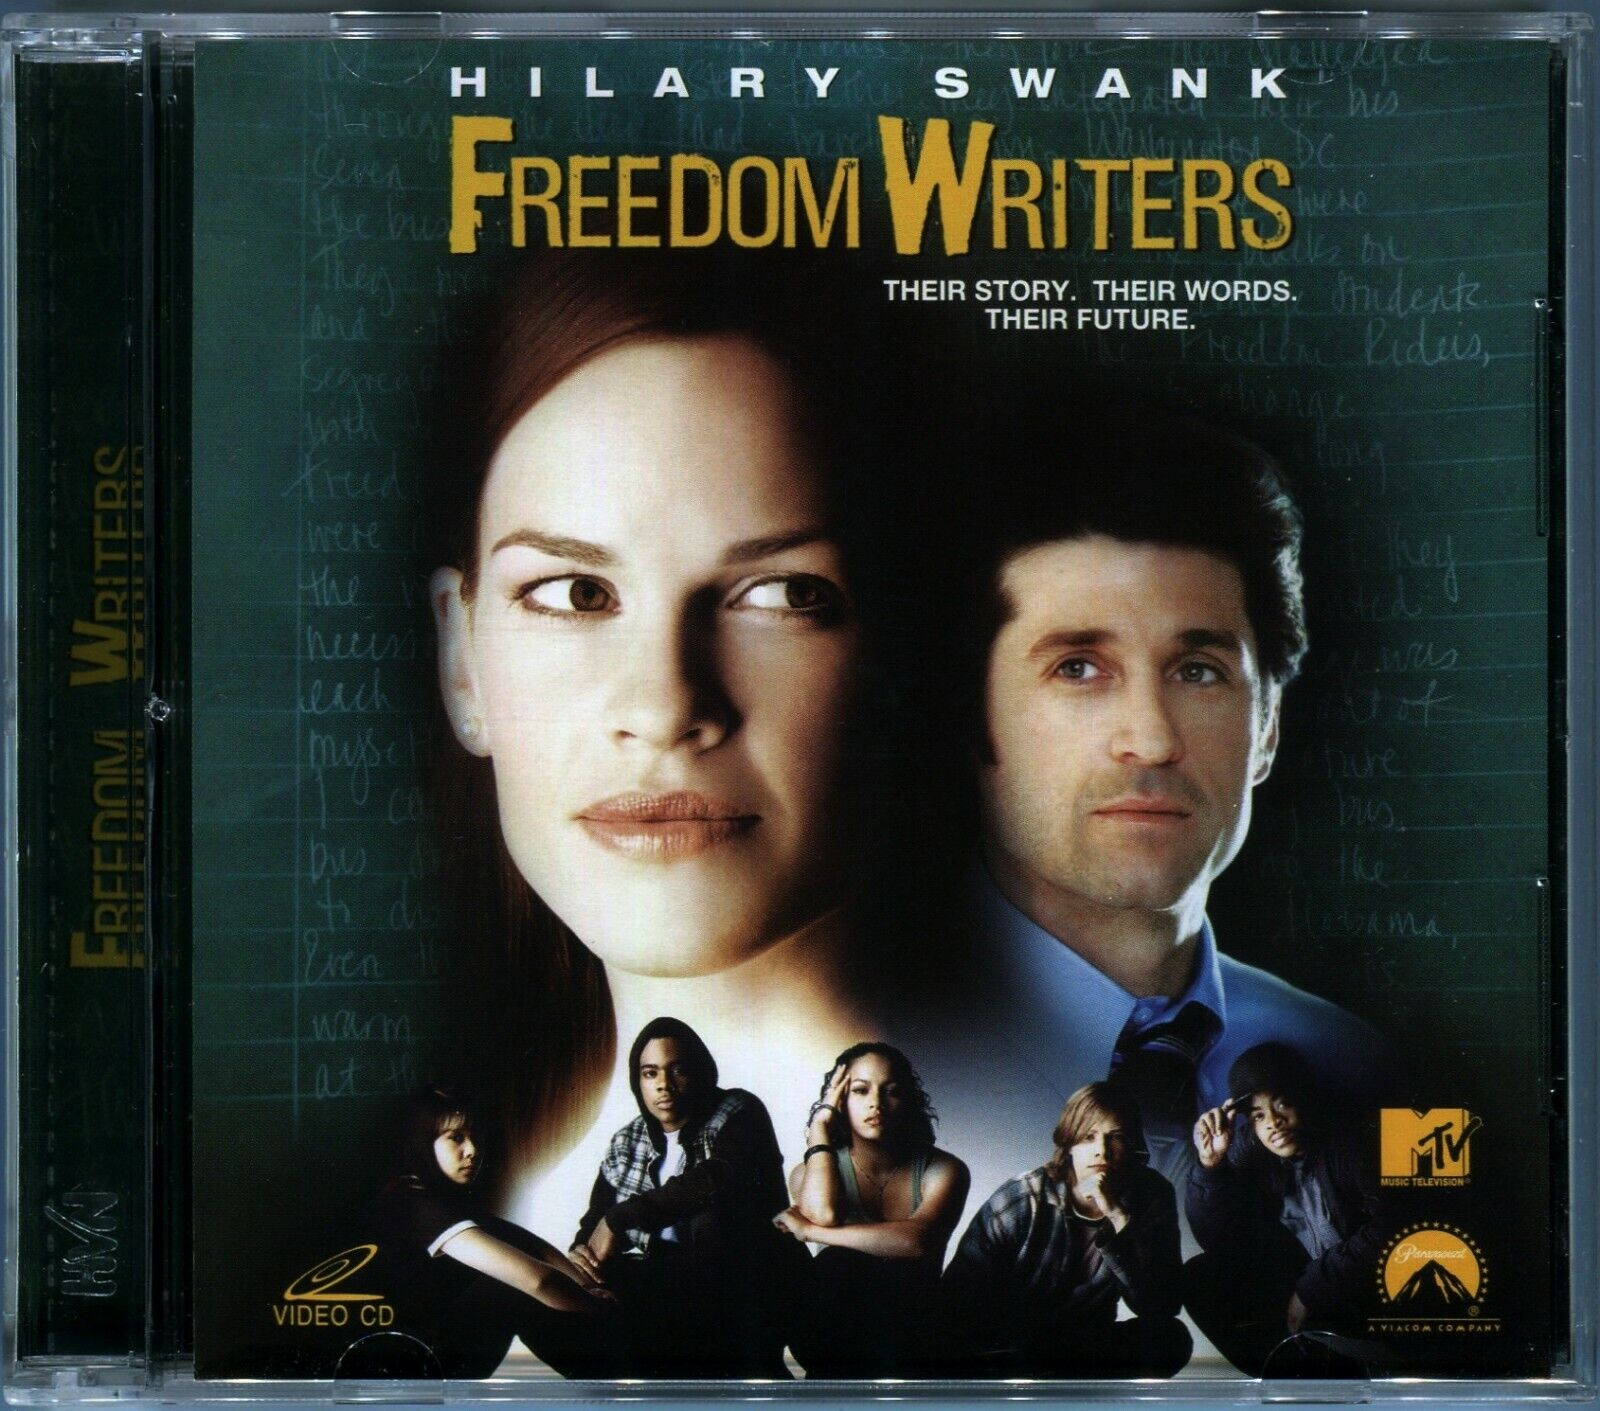 Details About 2007 Freedom Writers Hilary Swank Original Video Cd Vcd Set Rare Out Of Print